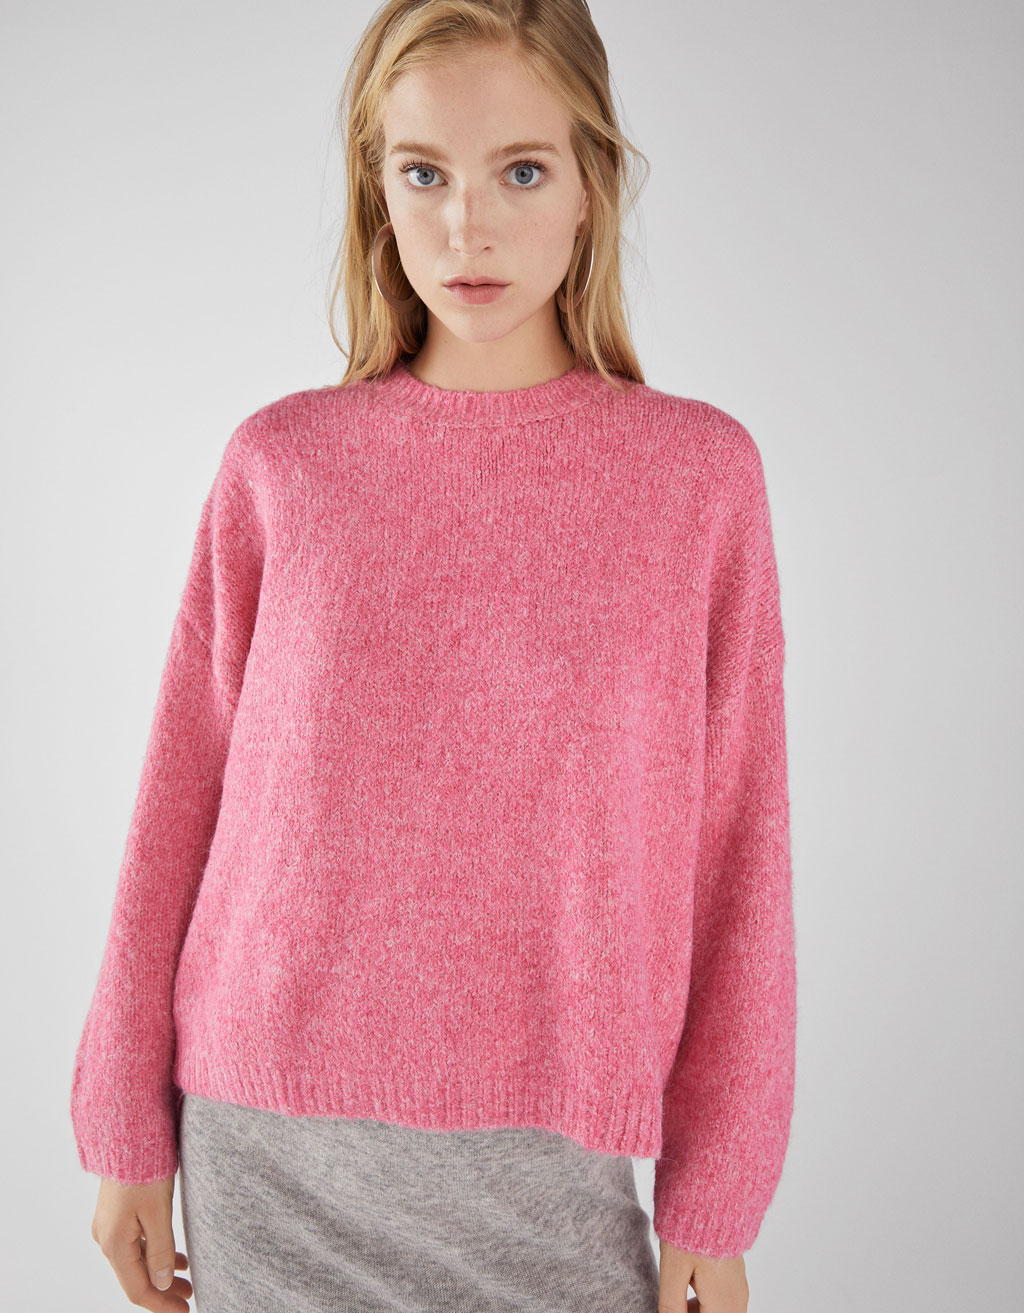 Sweater de manga comprida cropped